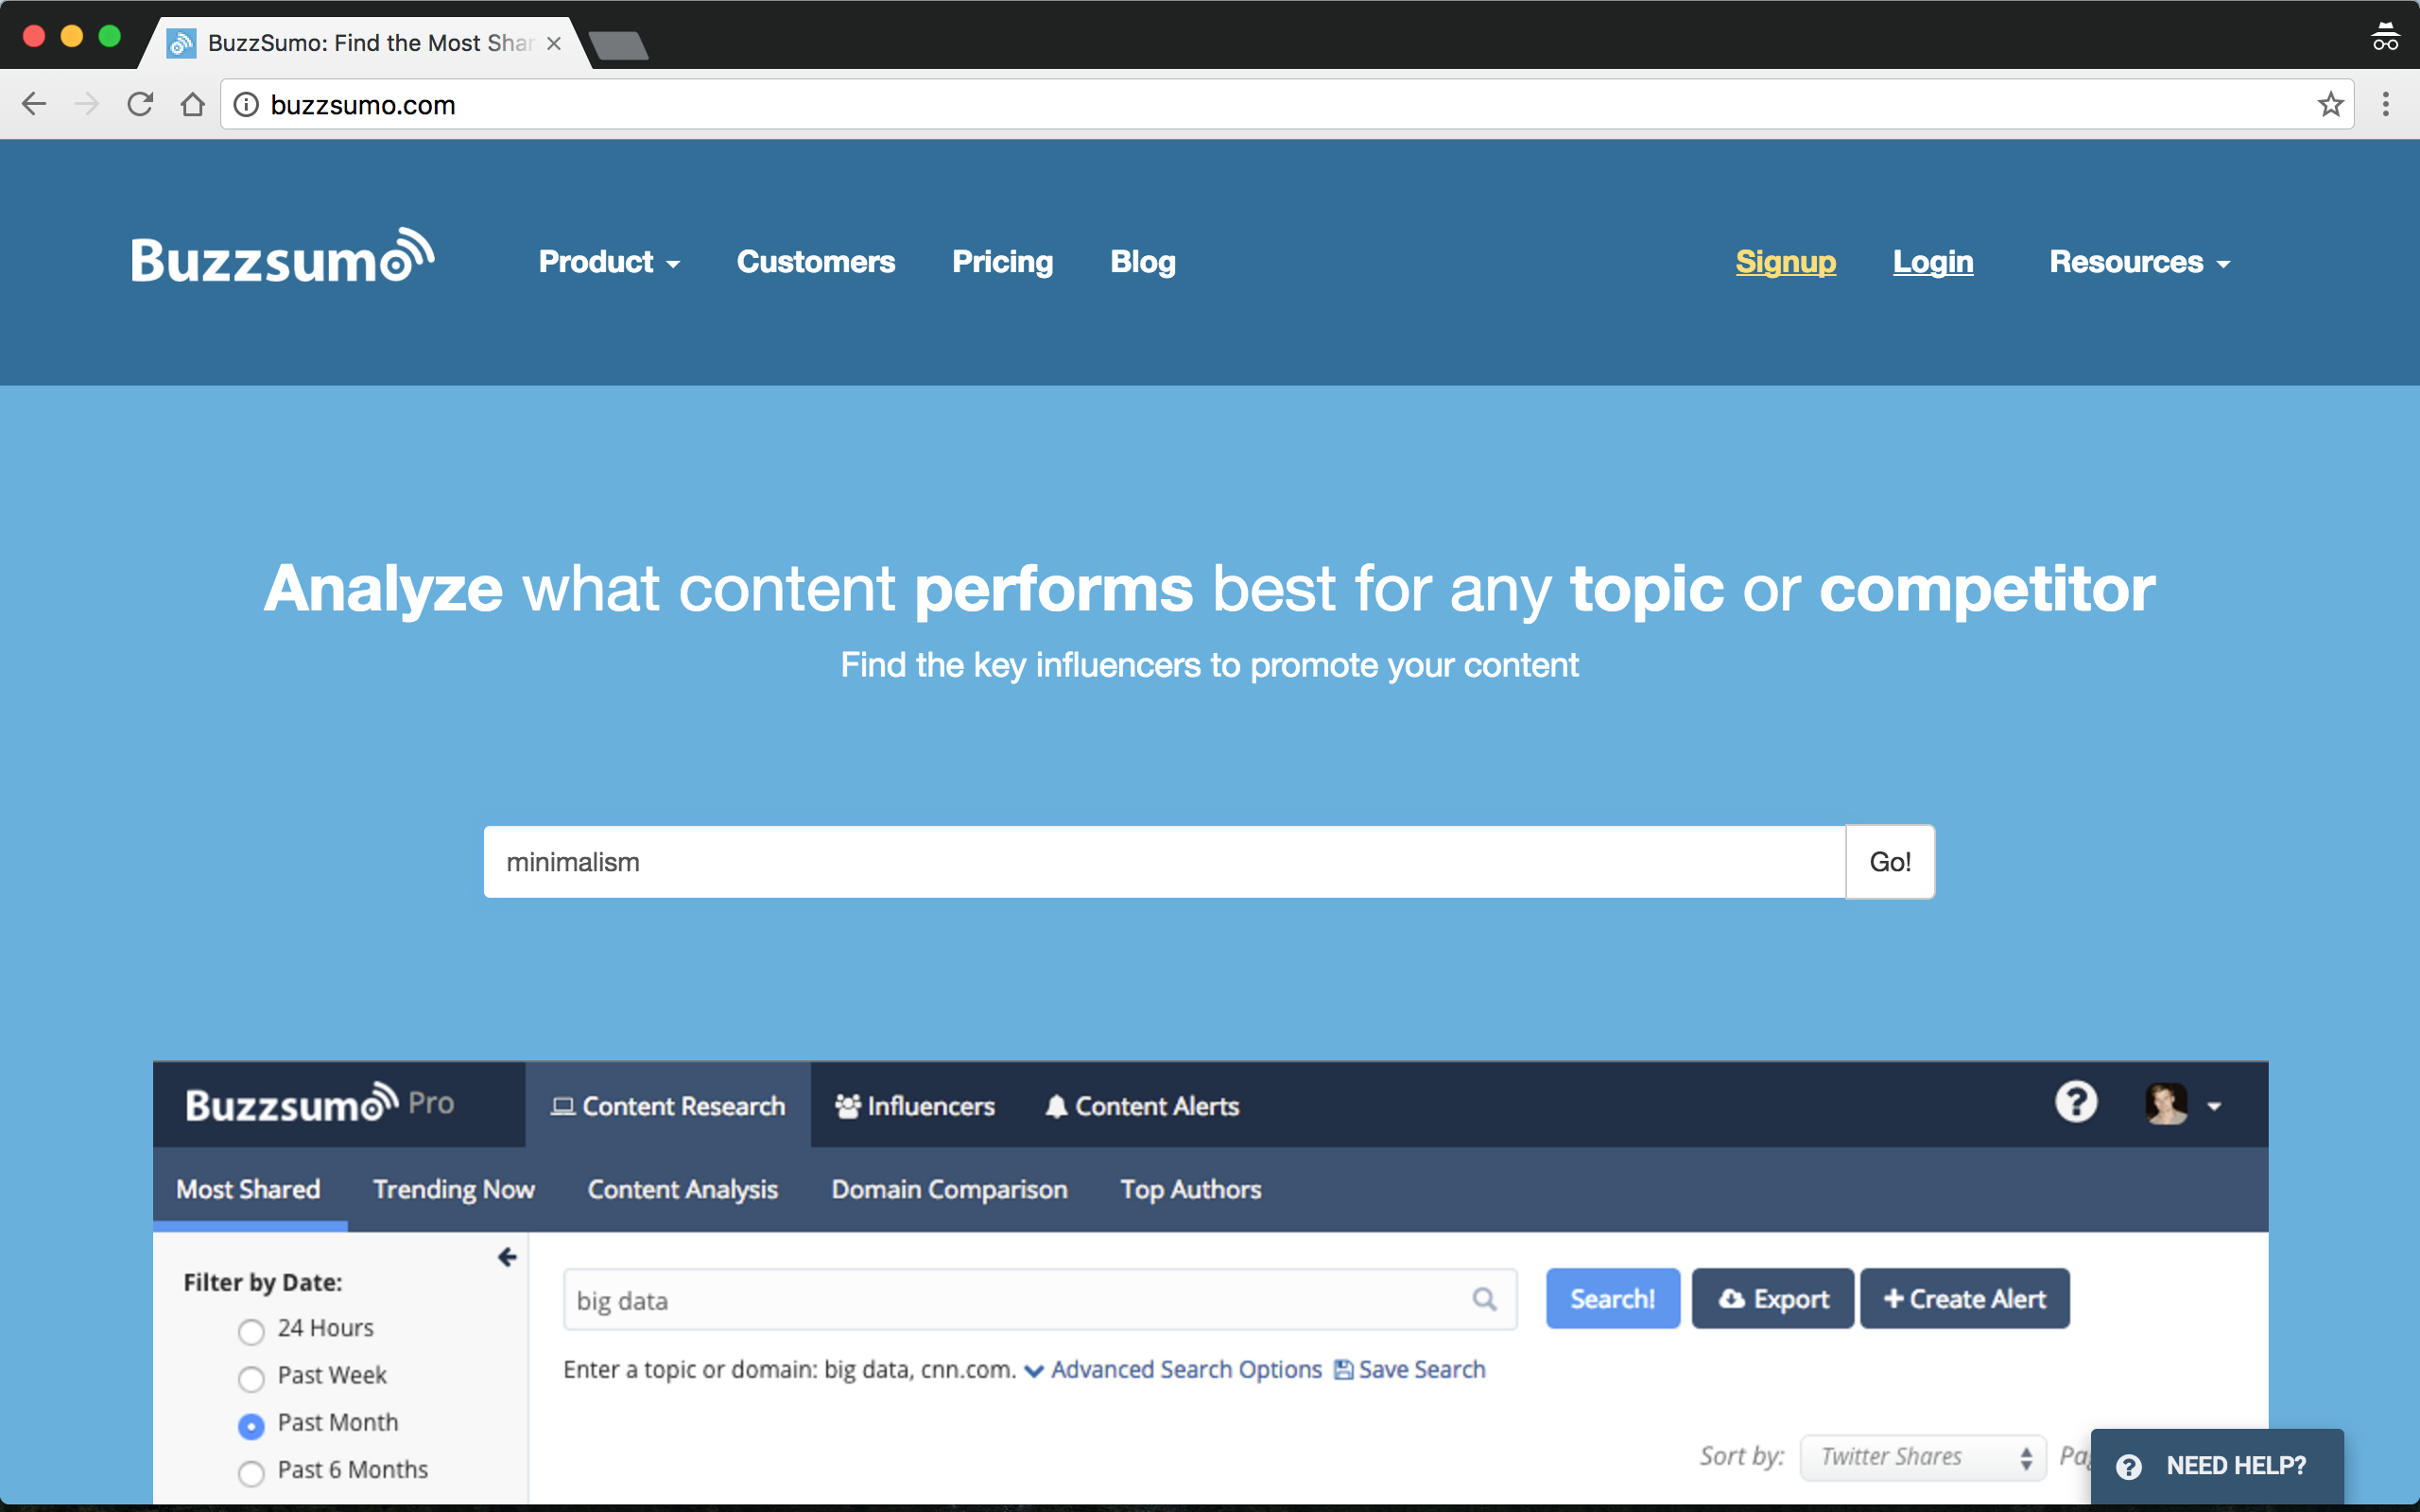 Buzzsumo Research Image